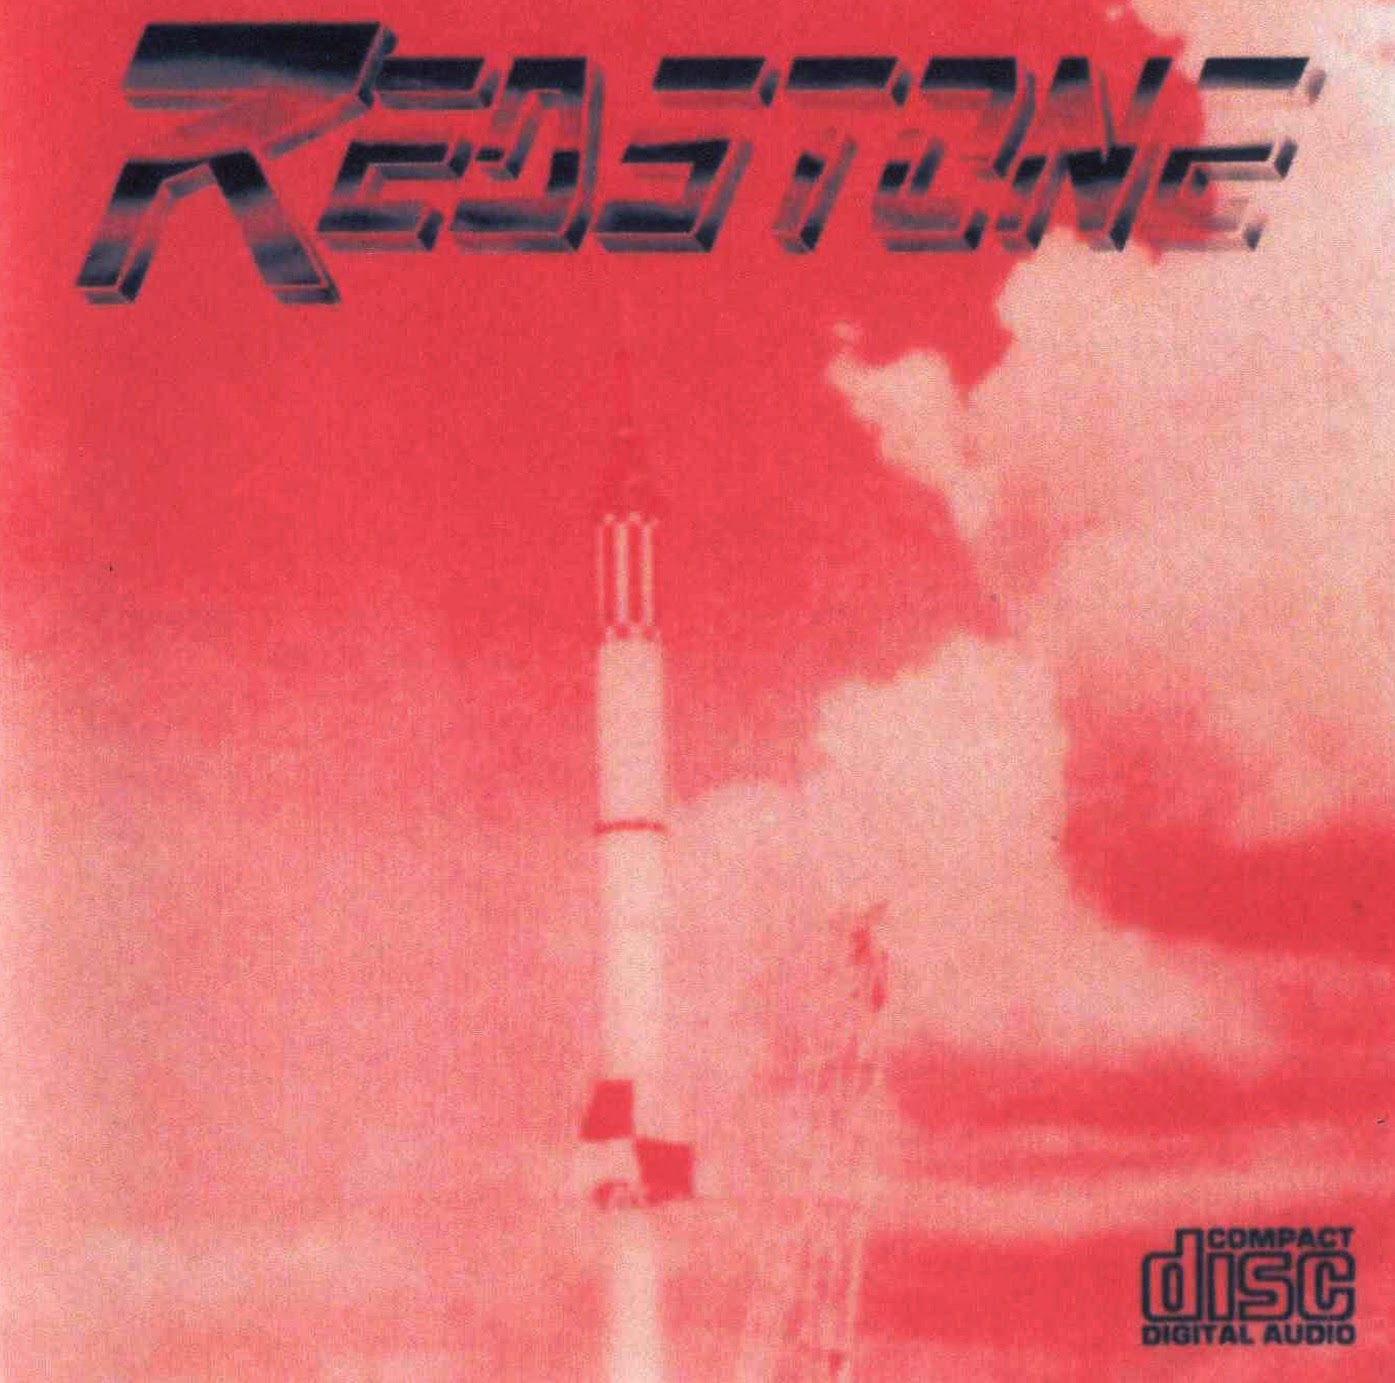 Redstone st 1988 aor melodic rock